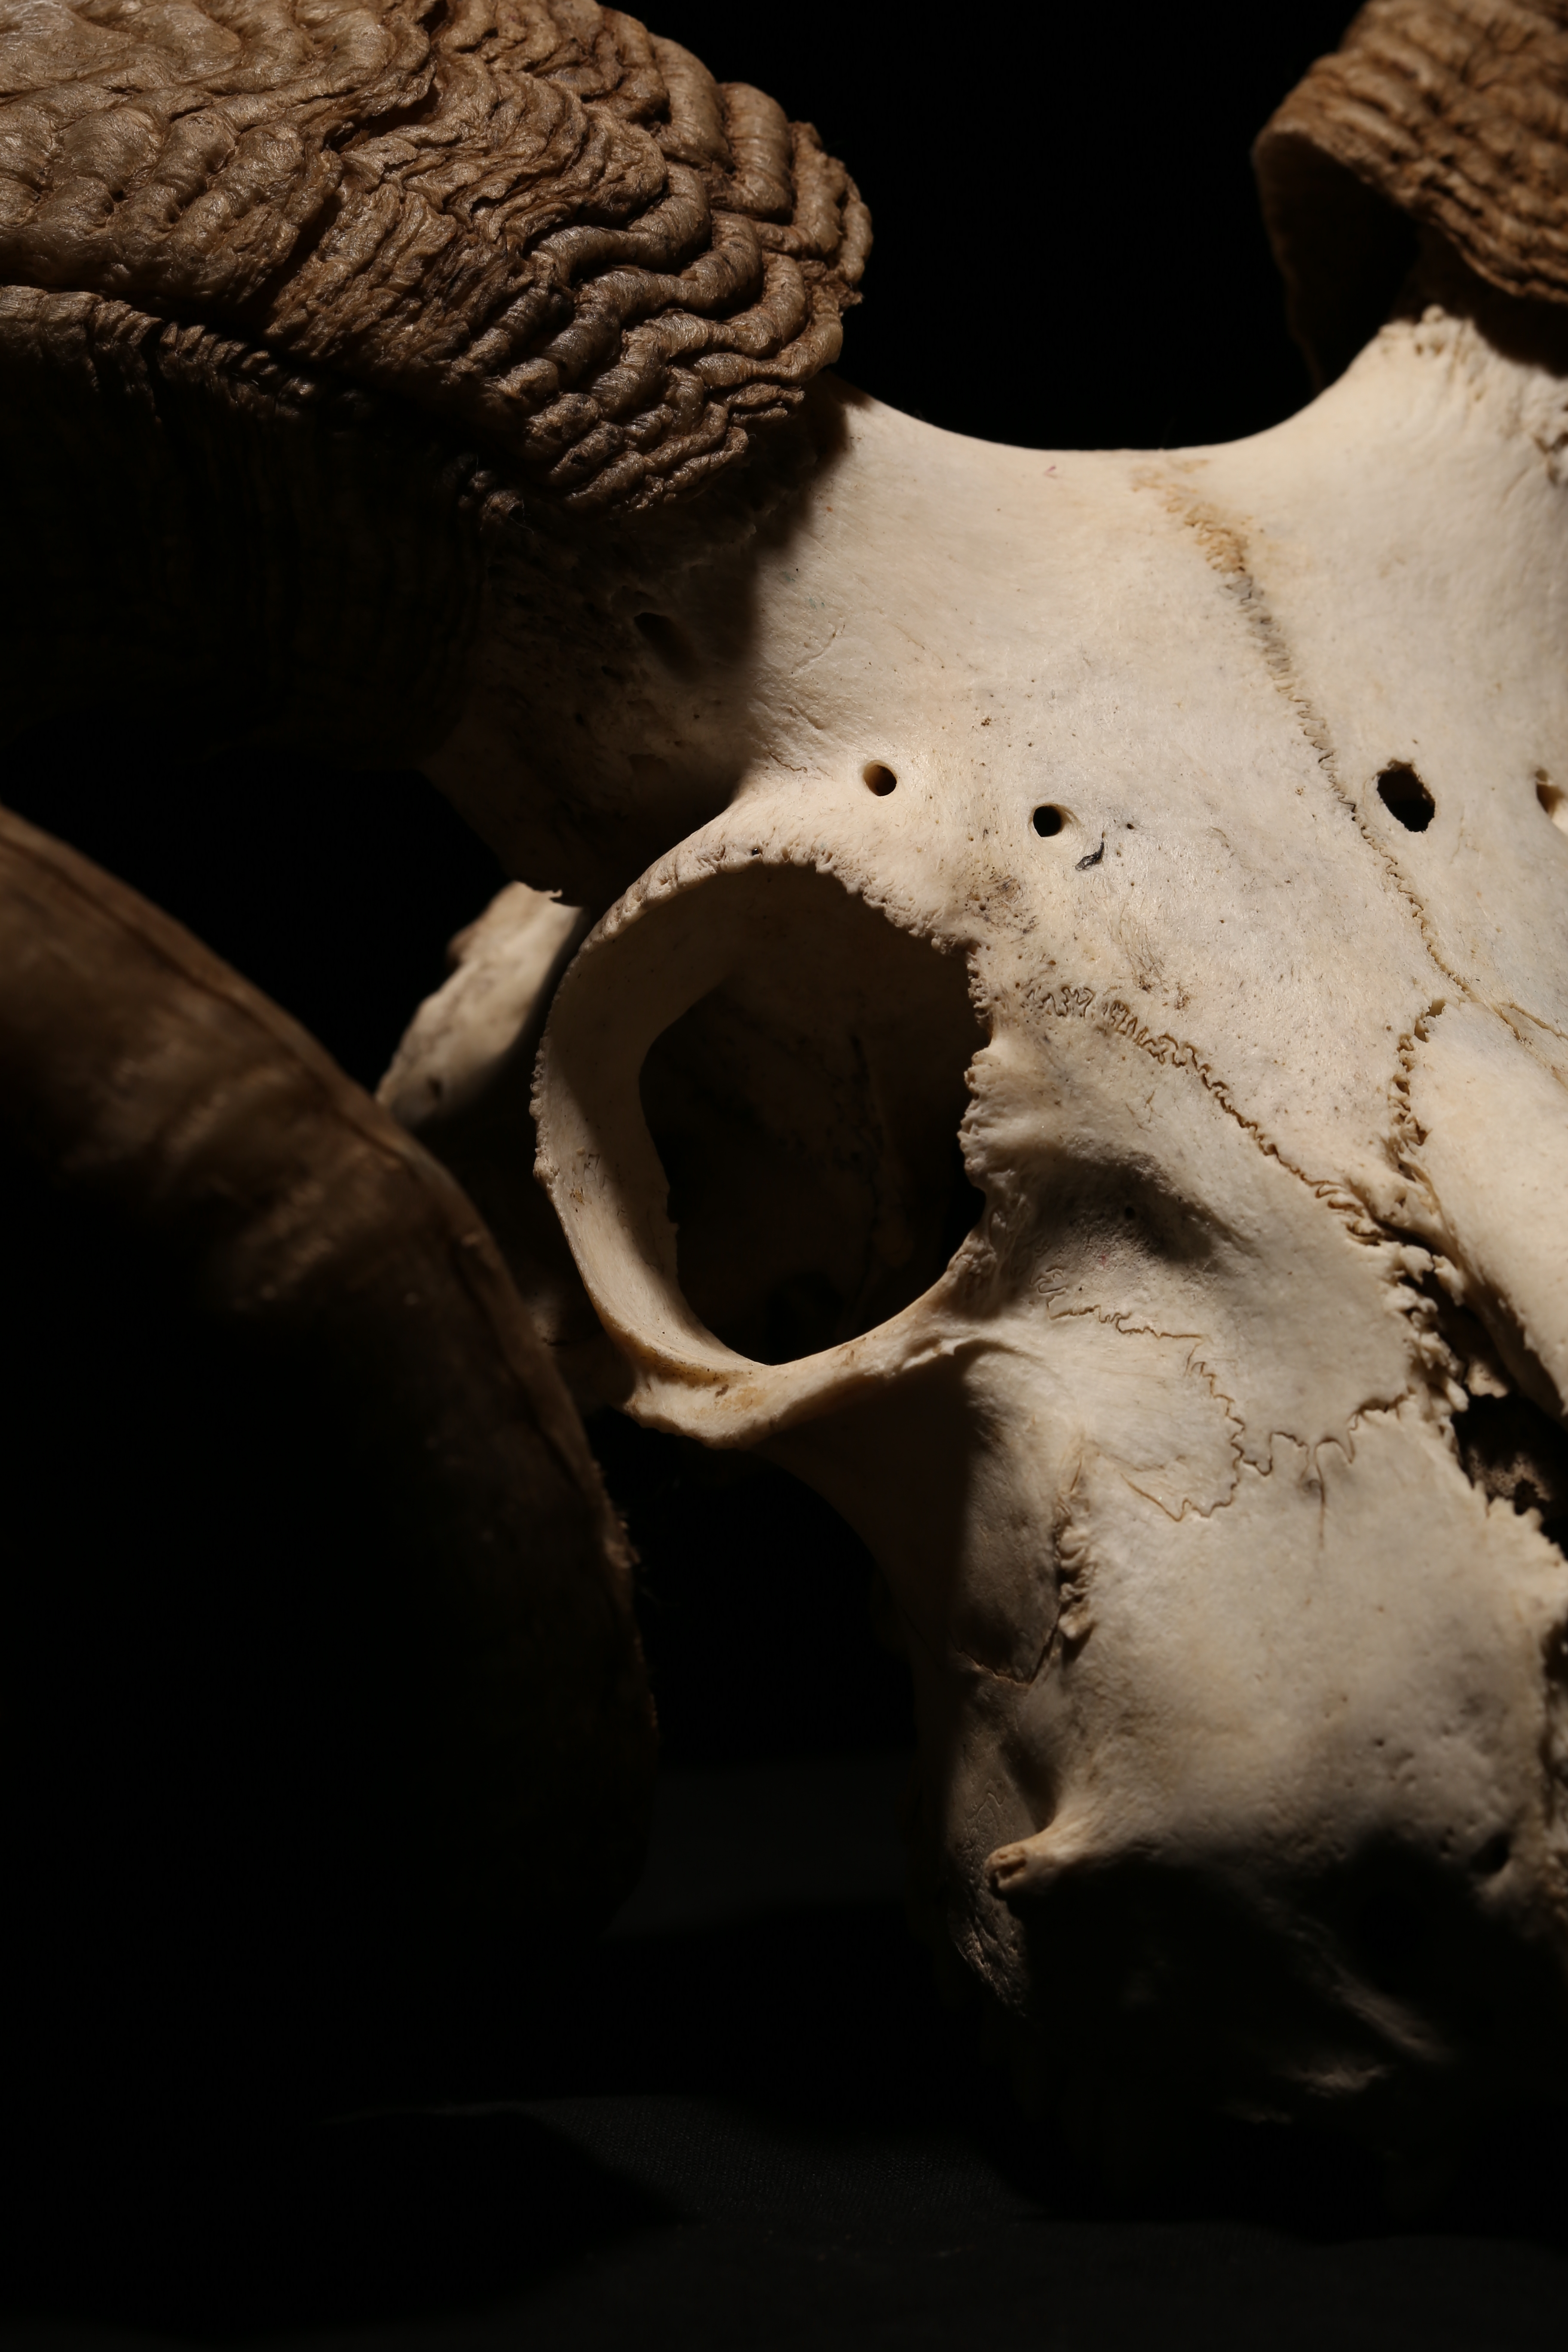 Animal Skull, Anatomy, Research, Horns, Isolated, HQ Photo